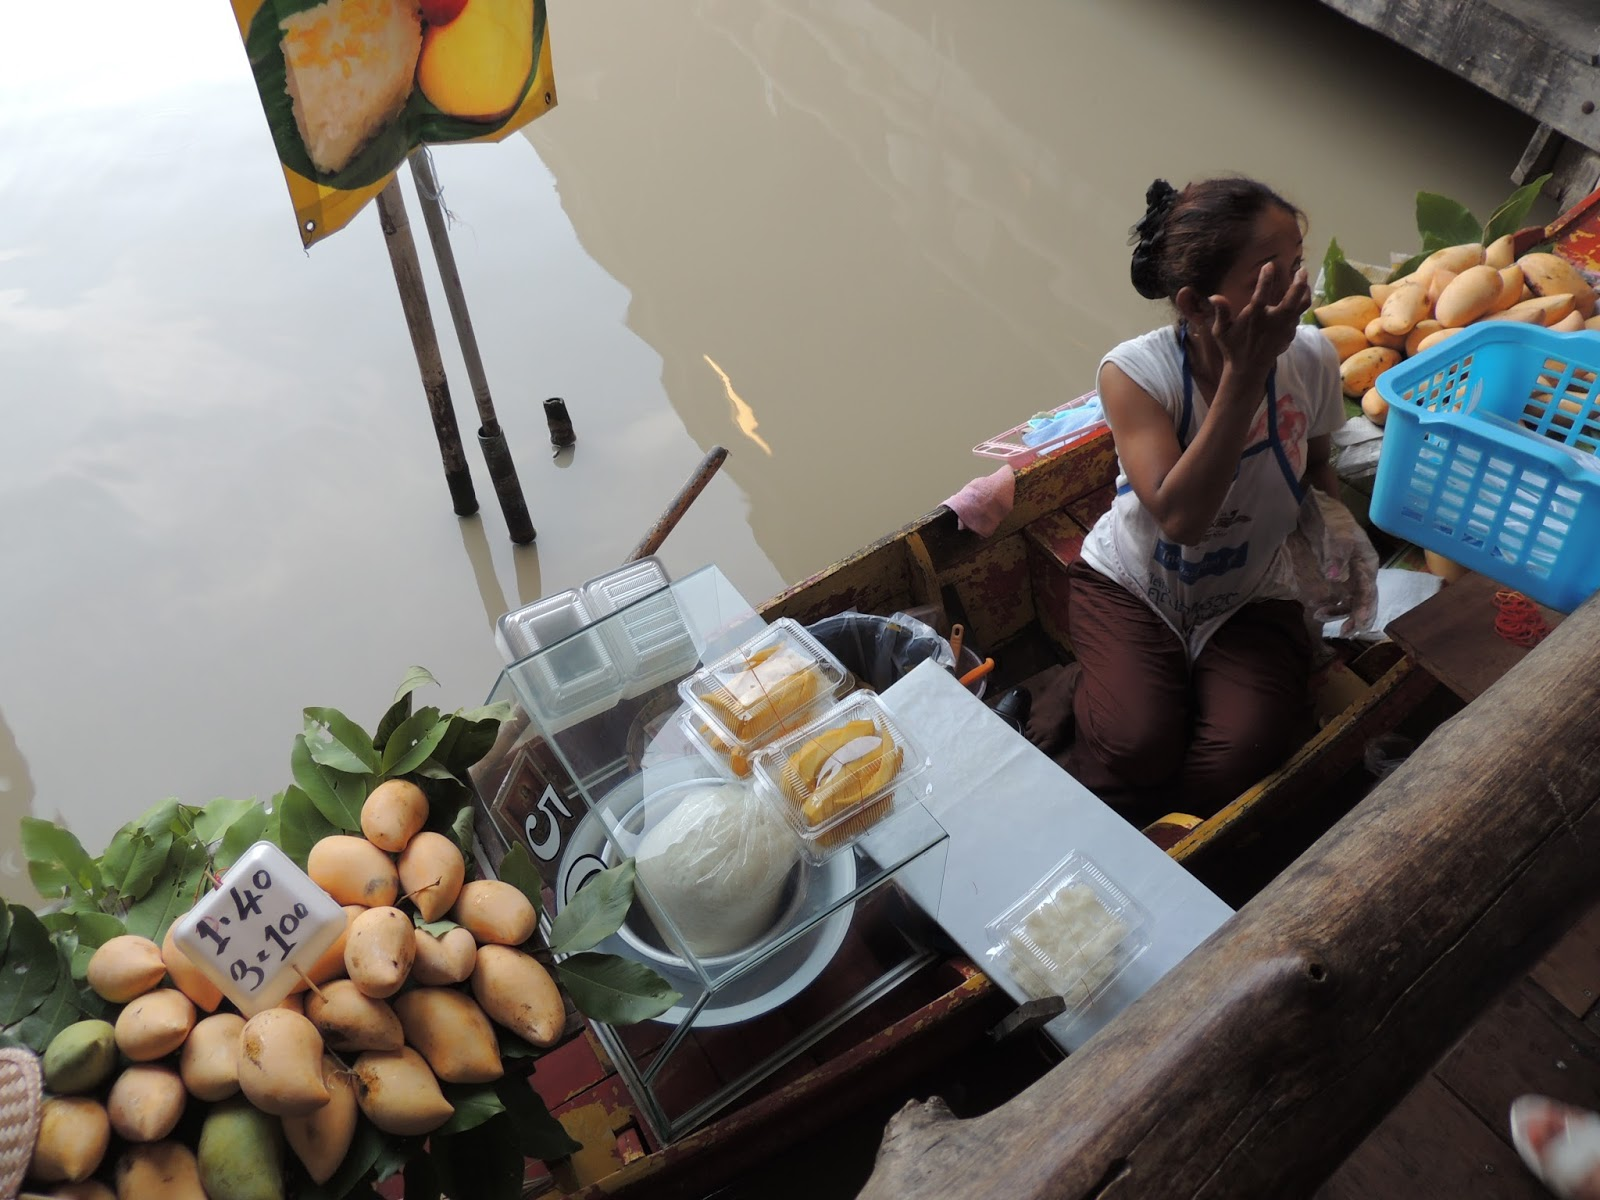 street food in thailand photo essay rathina s view space mango sticky rice